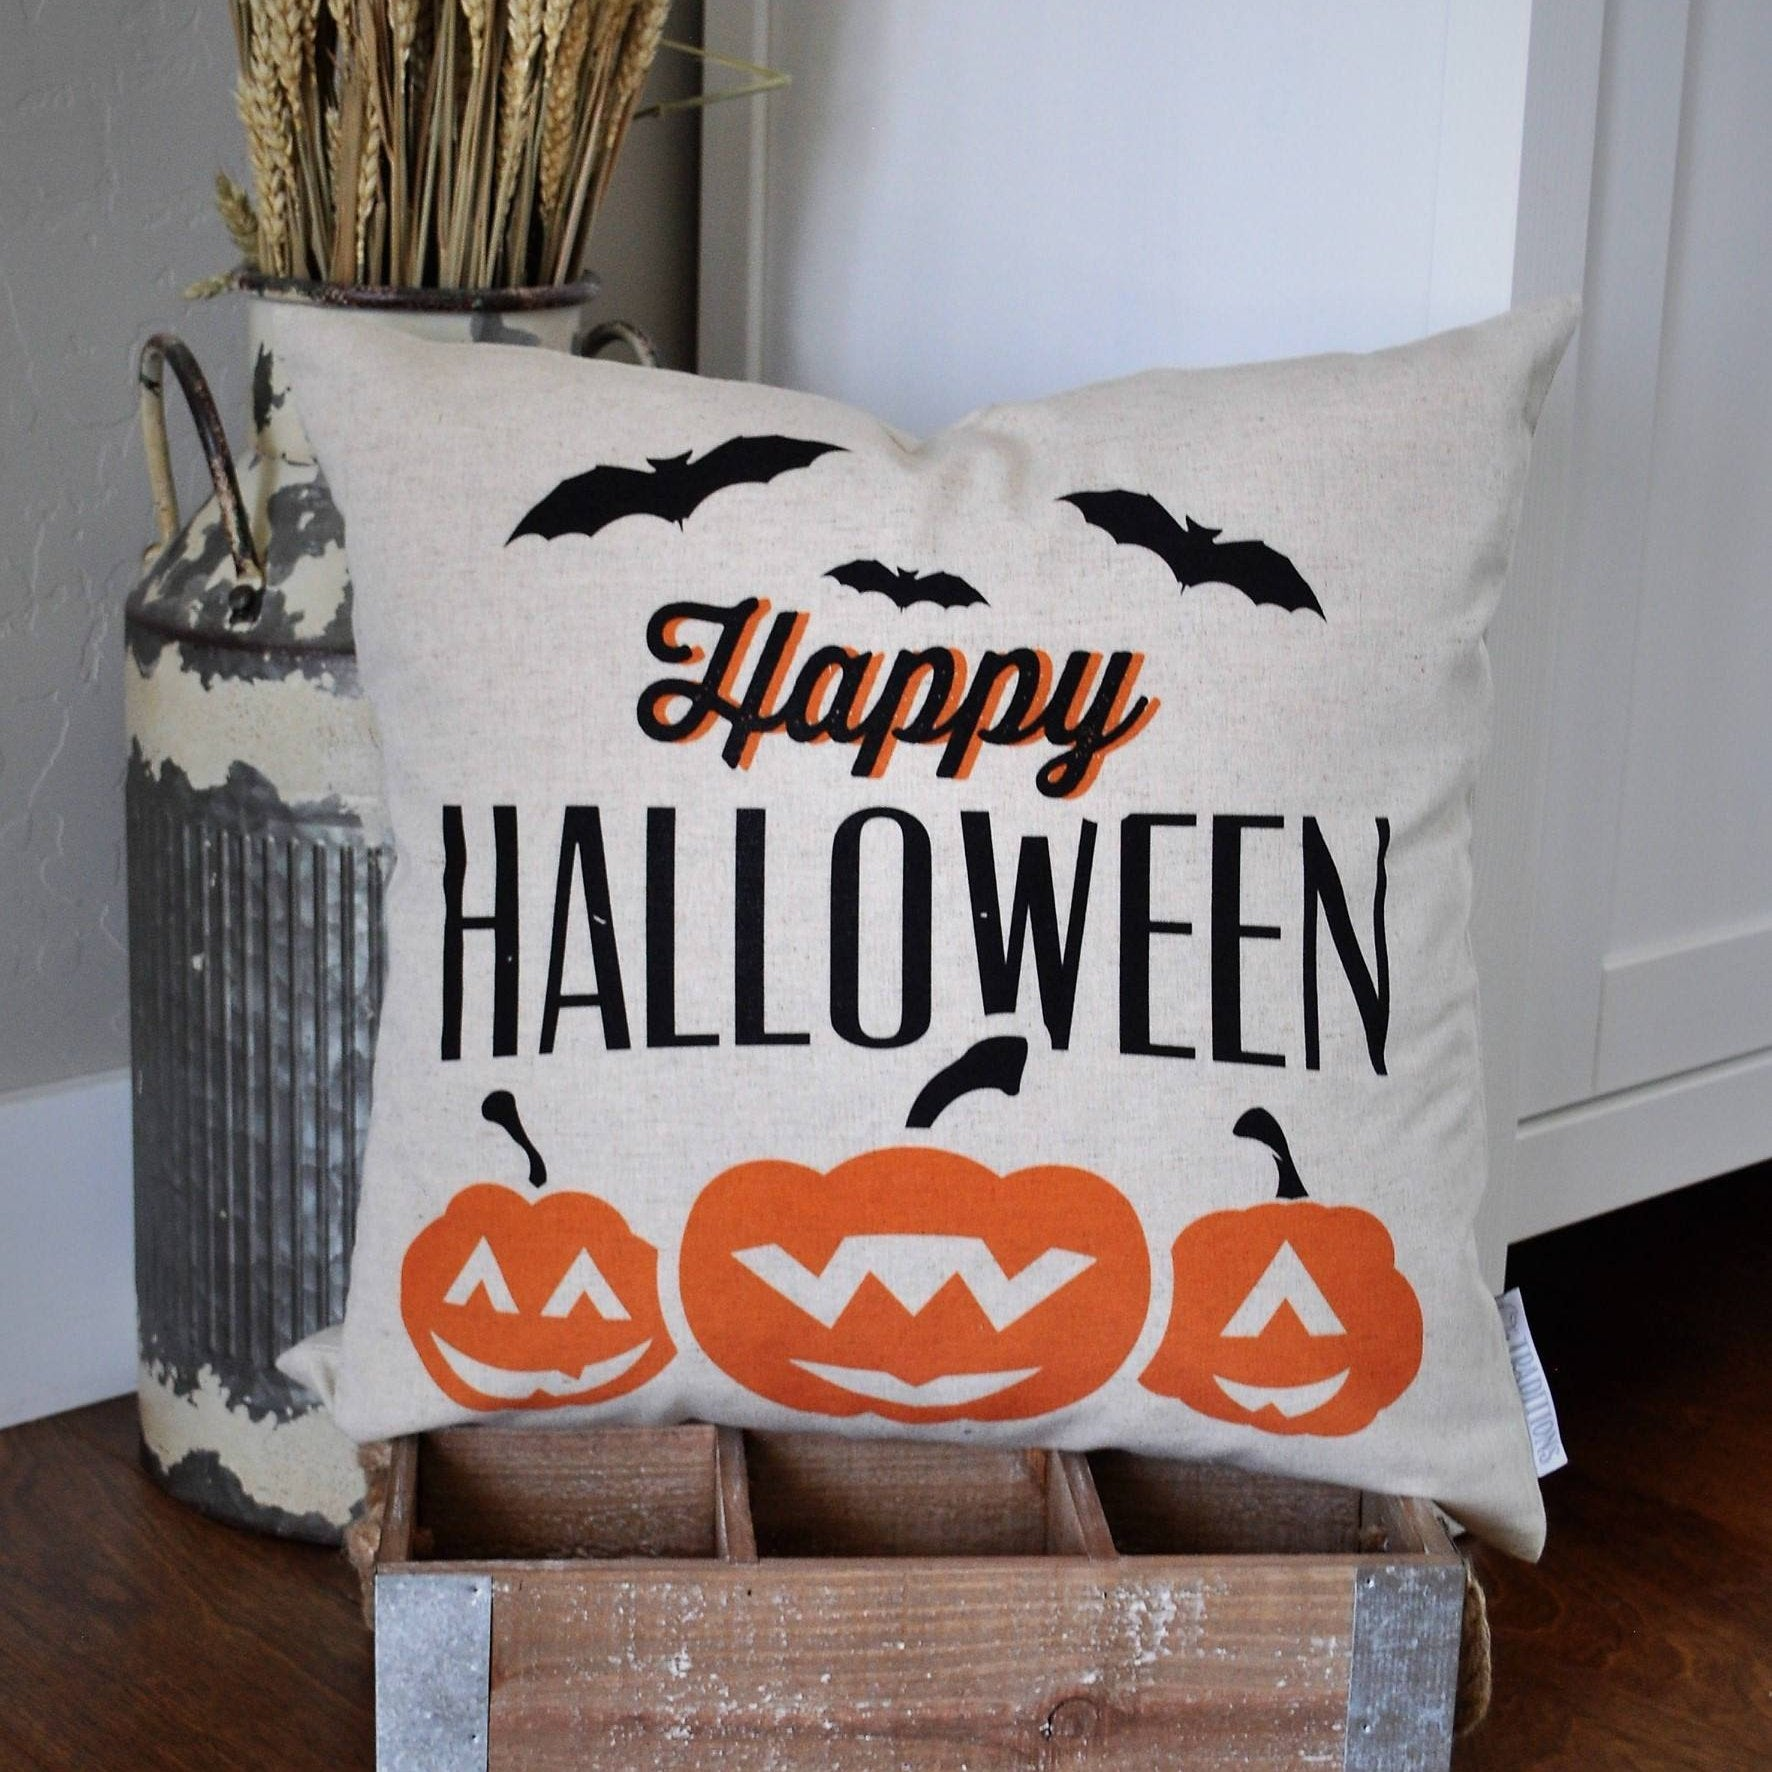 Halloween Pillow Cover, Happy Halloween Pillow Cover, Halloween Decor, Pumpkin Pillow, Fall pillow